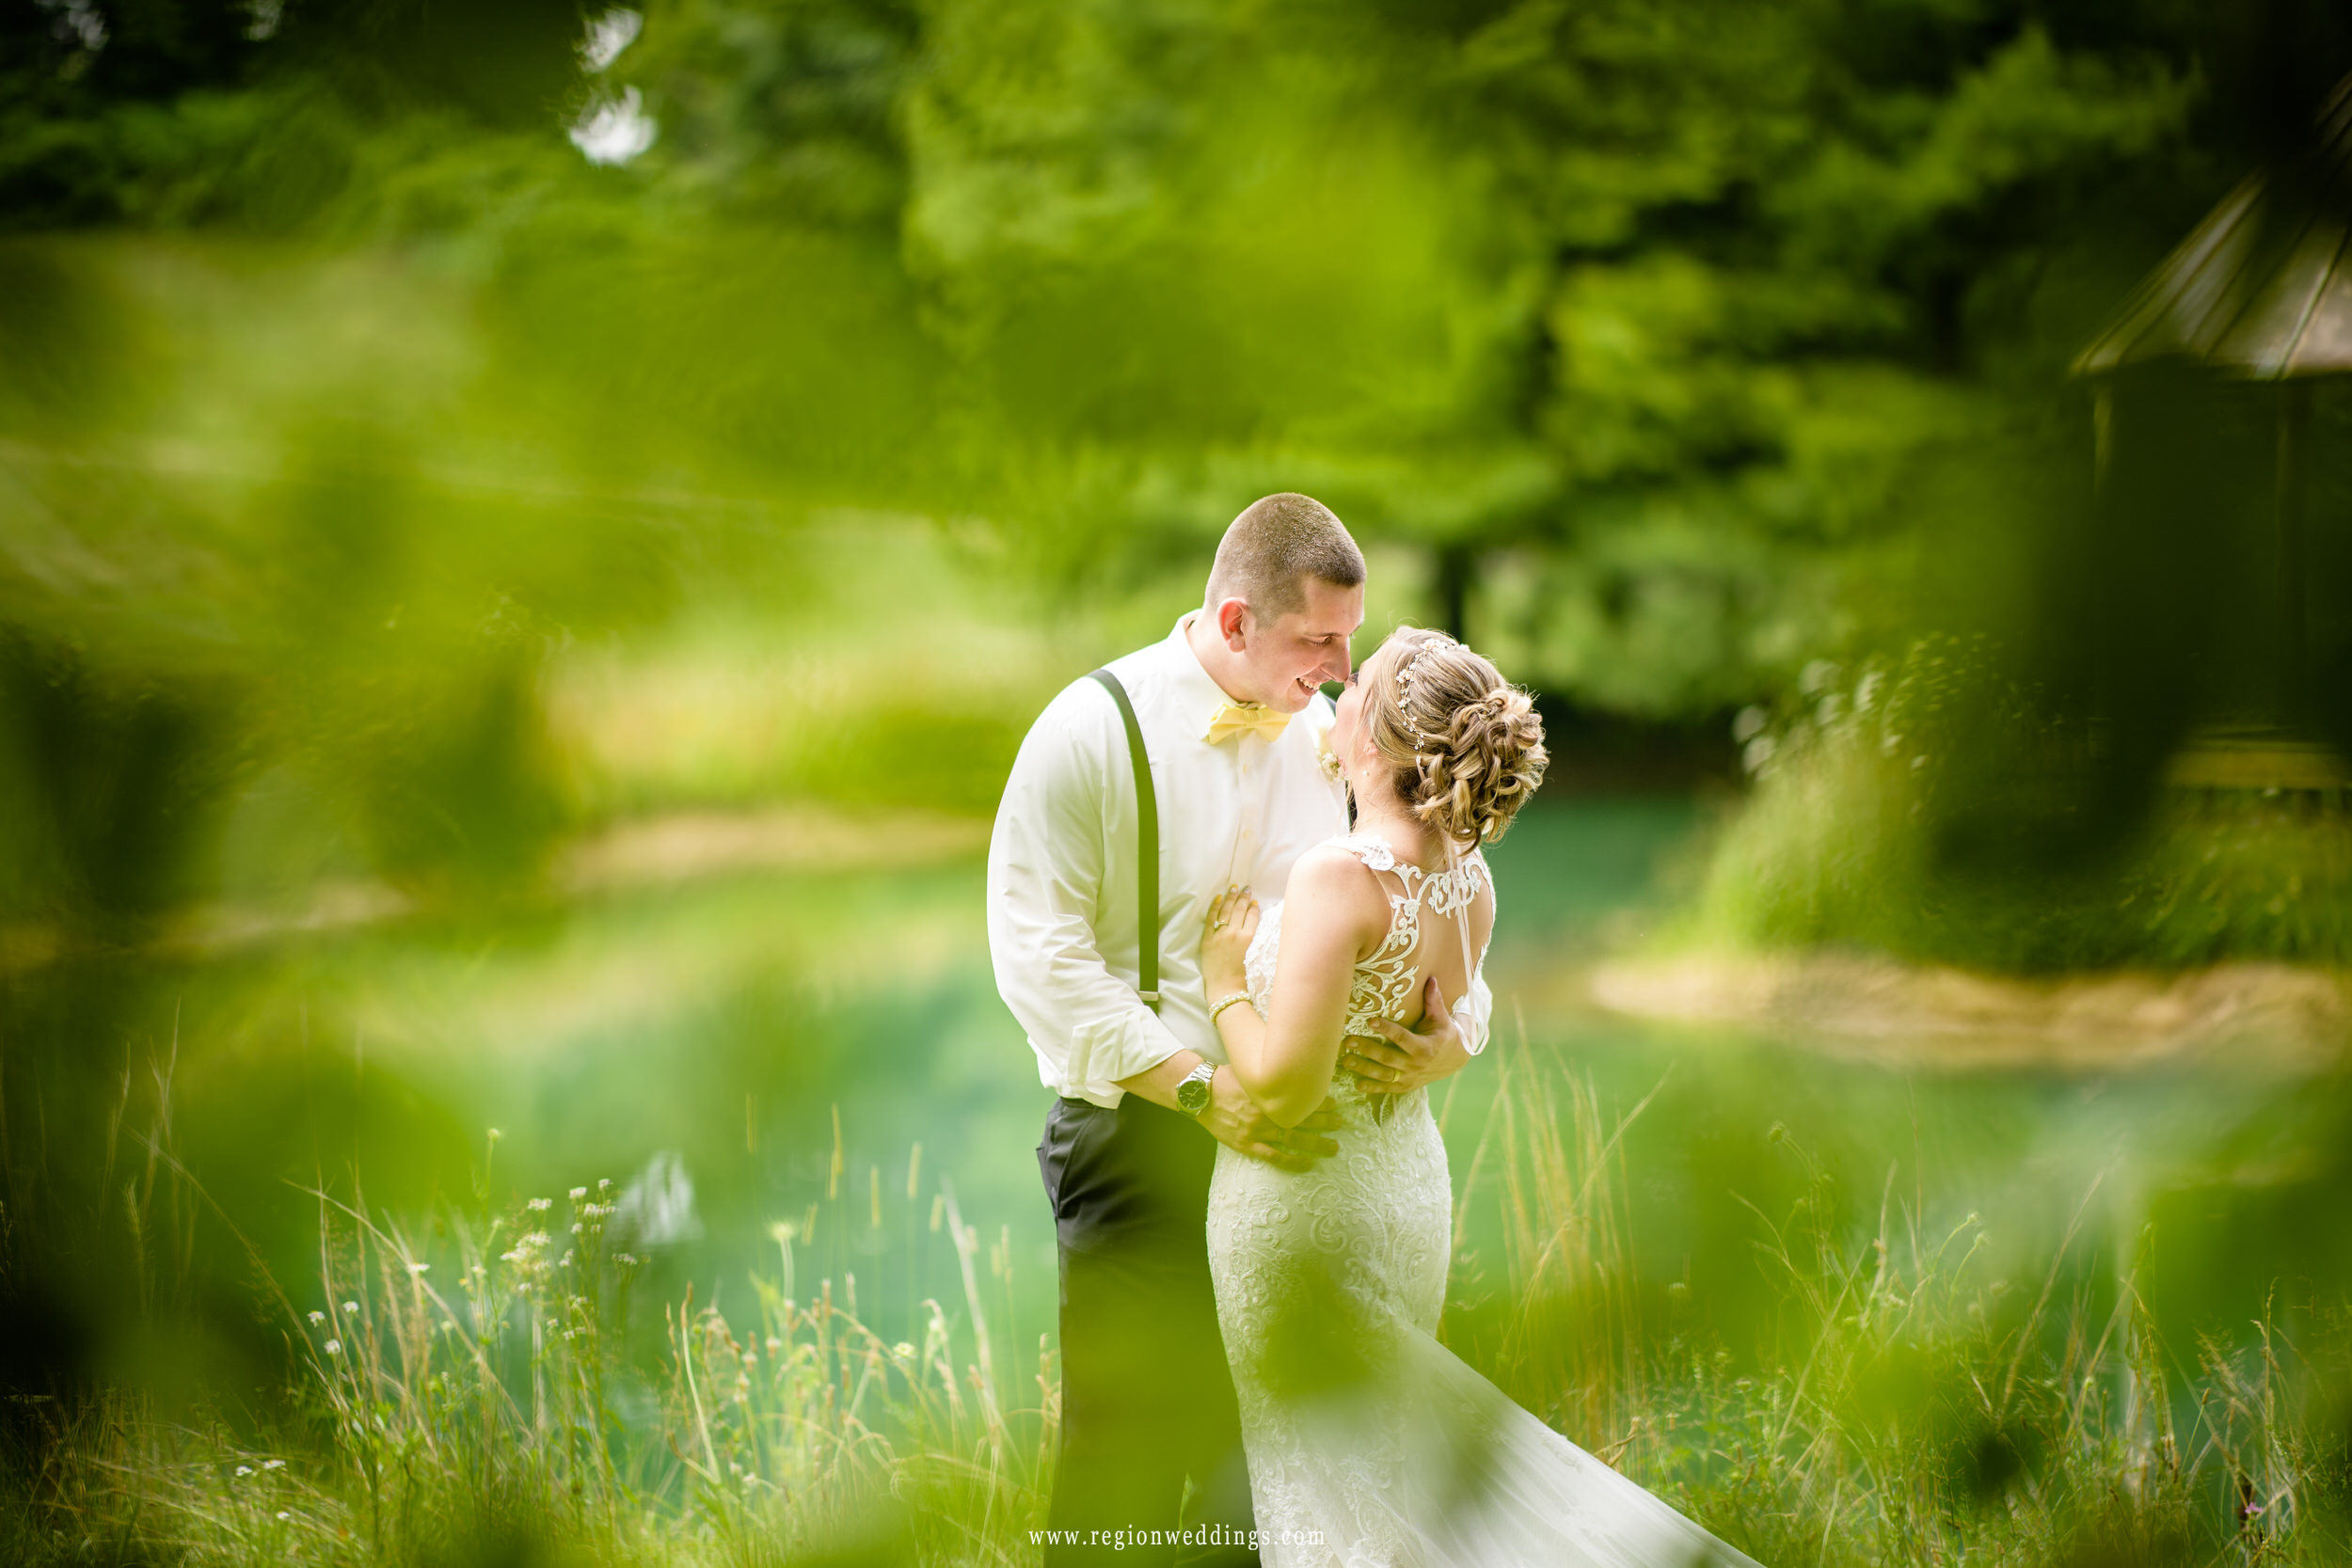 The bride and groom surrounded by swirling greenery at Heston Hills.